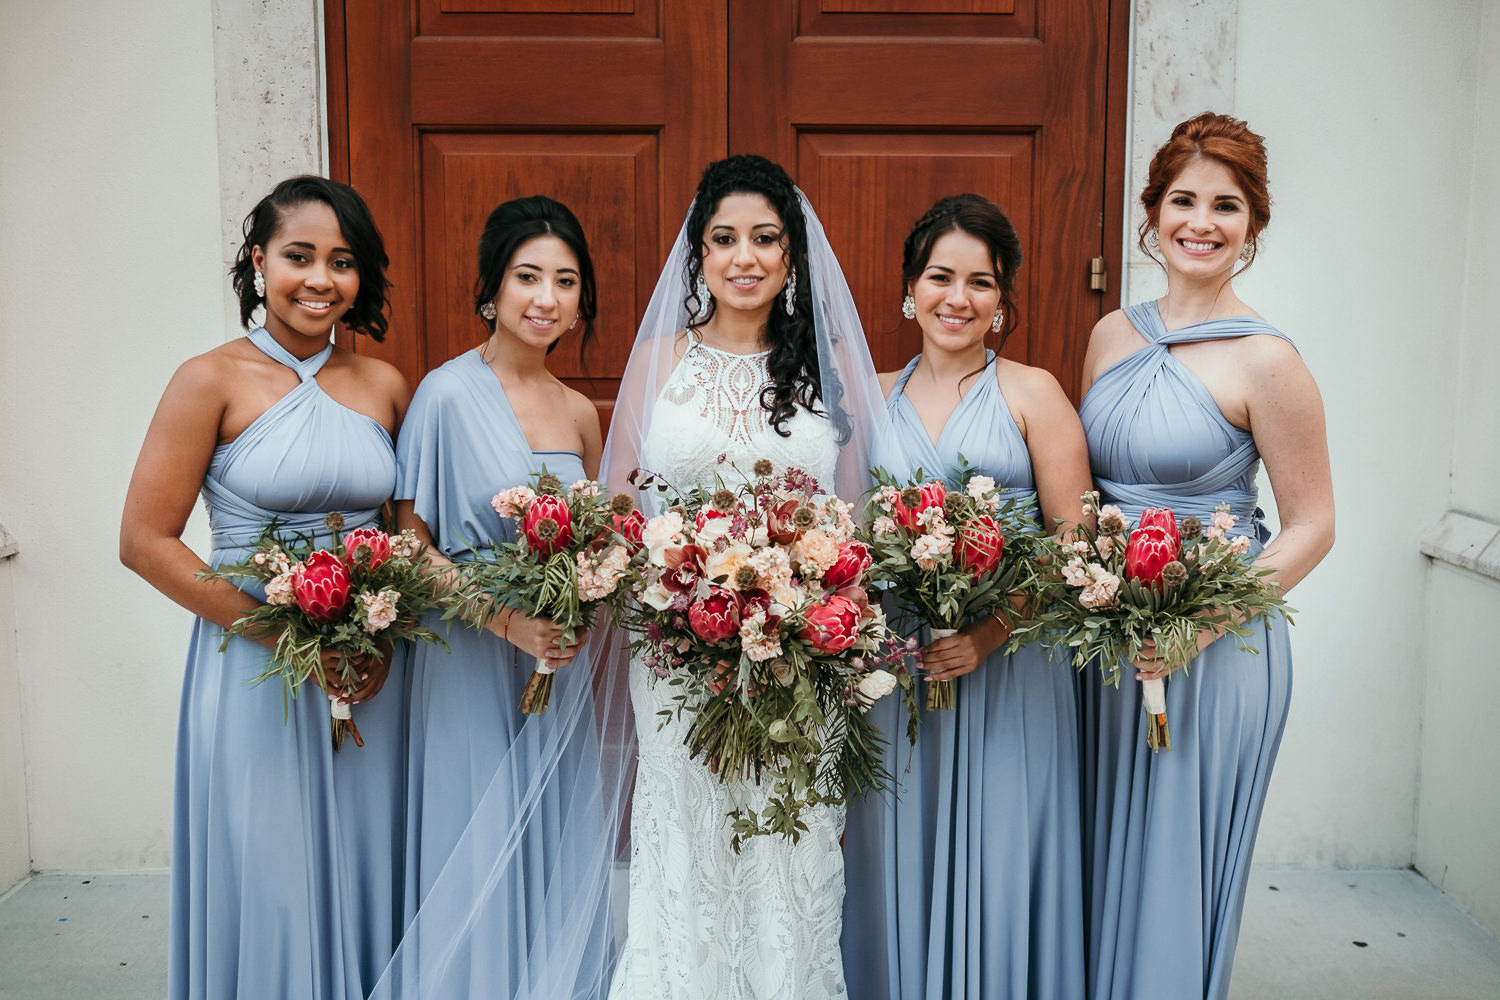 bride posing with bridesmaids wearing blue dresses holding flowers